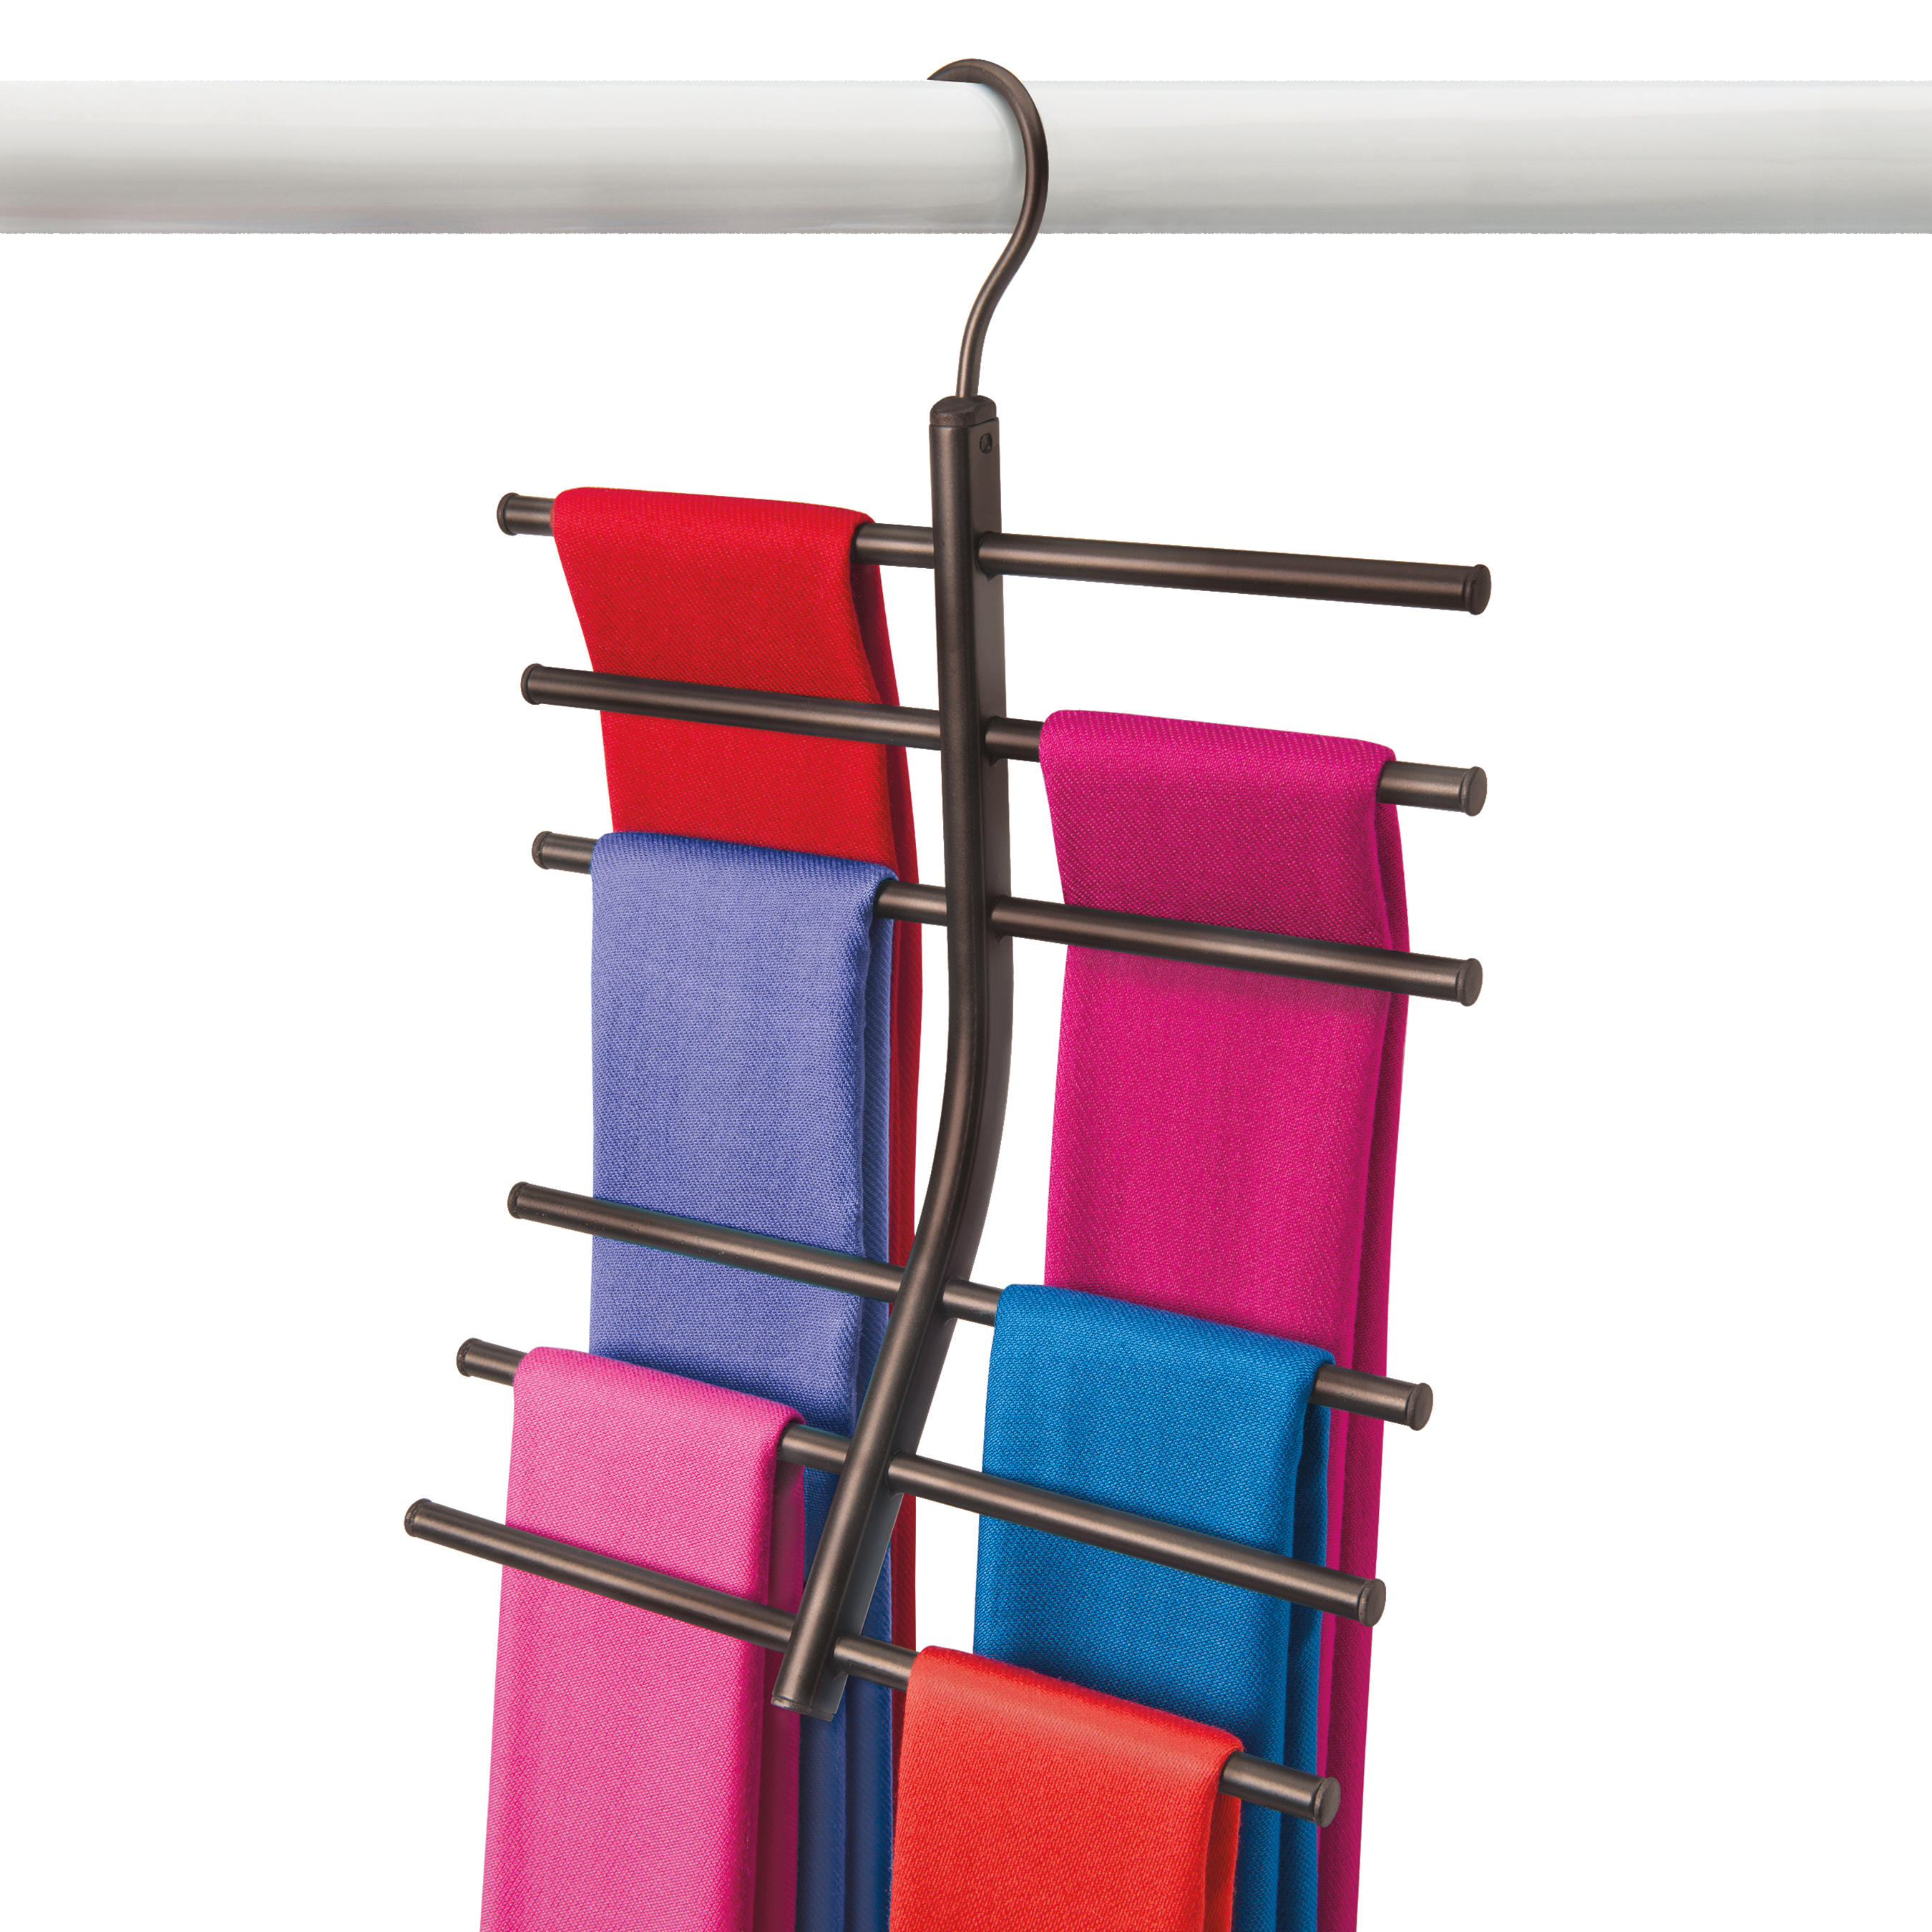 Curved Closet Rod Pleasing The Curved Tiered Design Keeps Scarves Separate And Wrinklefree Design Ideas